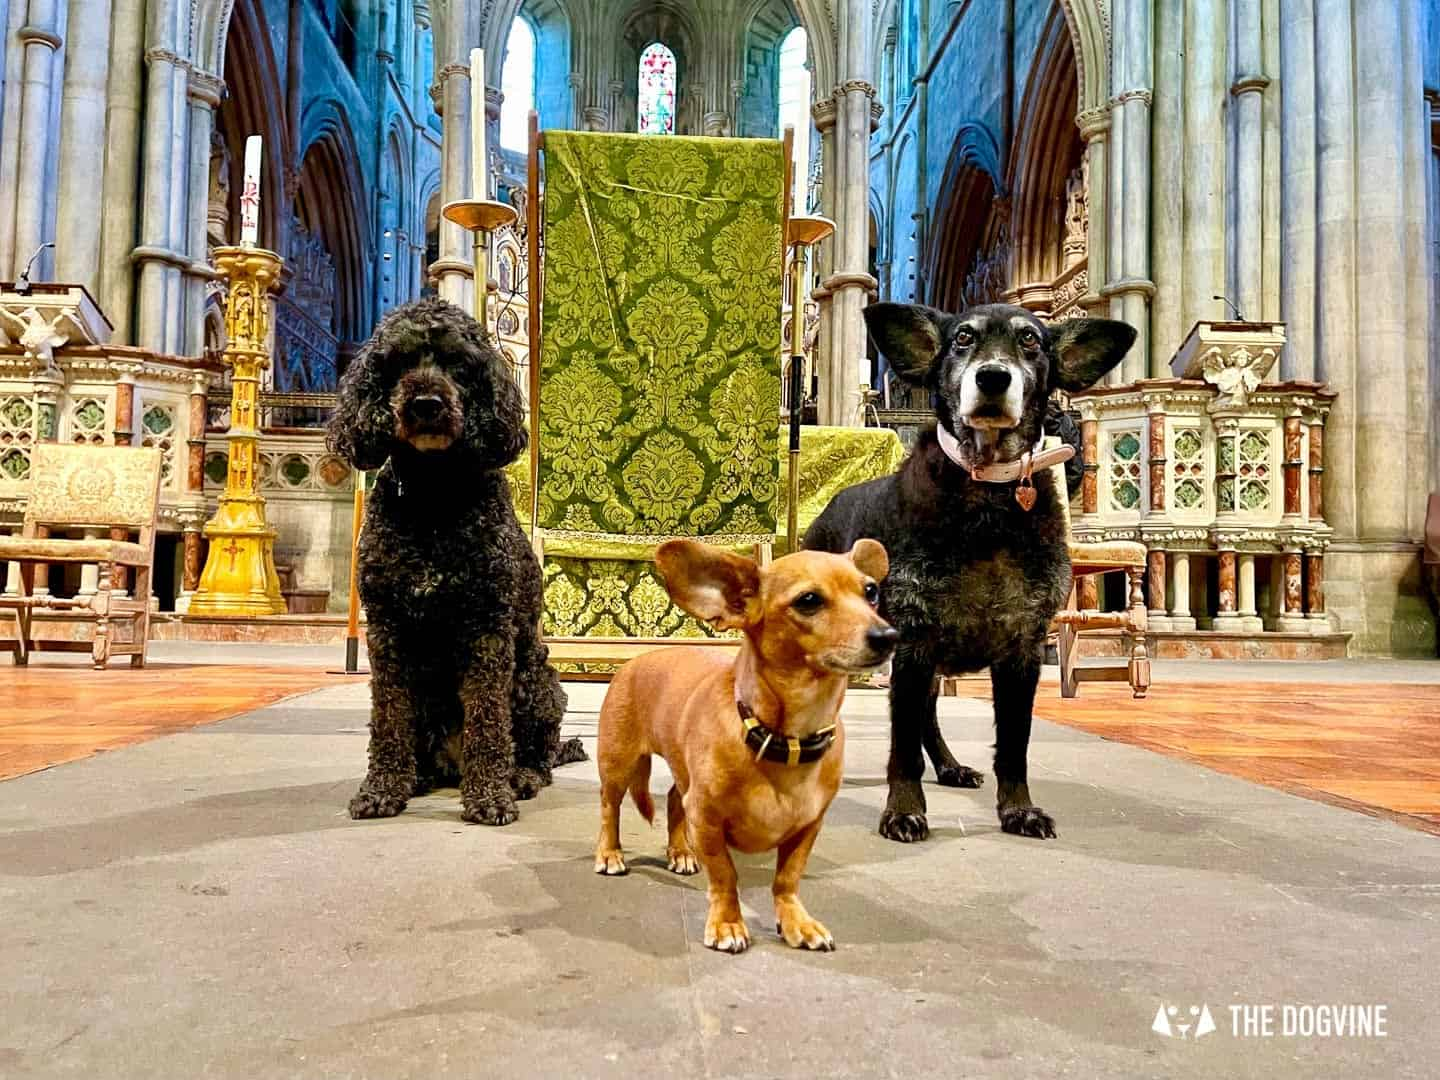 Did You Know There's A Beautiful Dog-friendly Church In London?